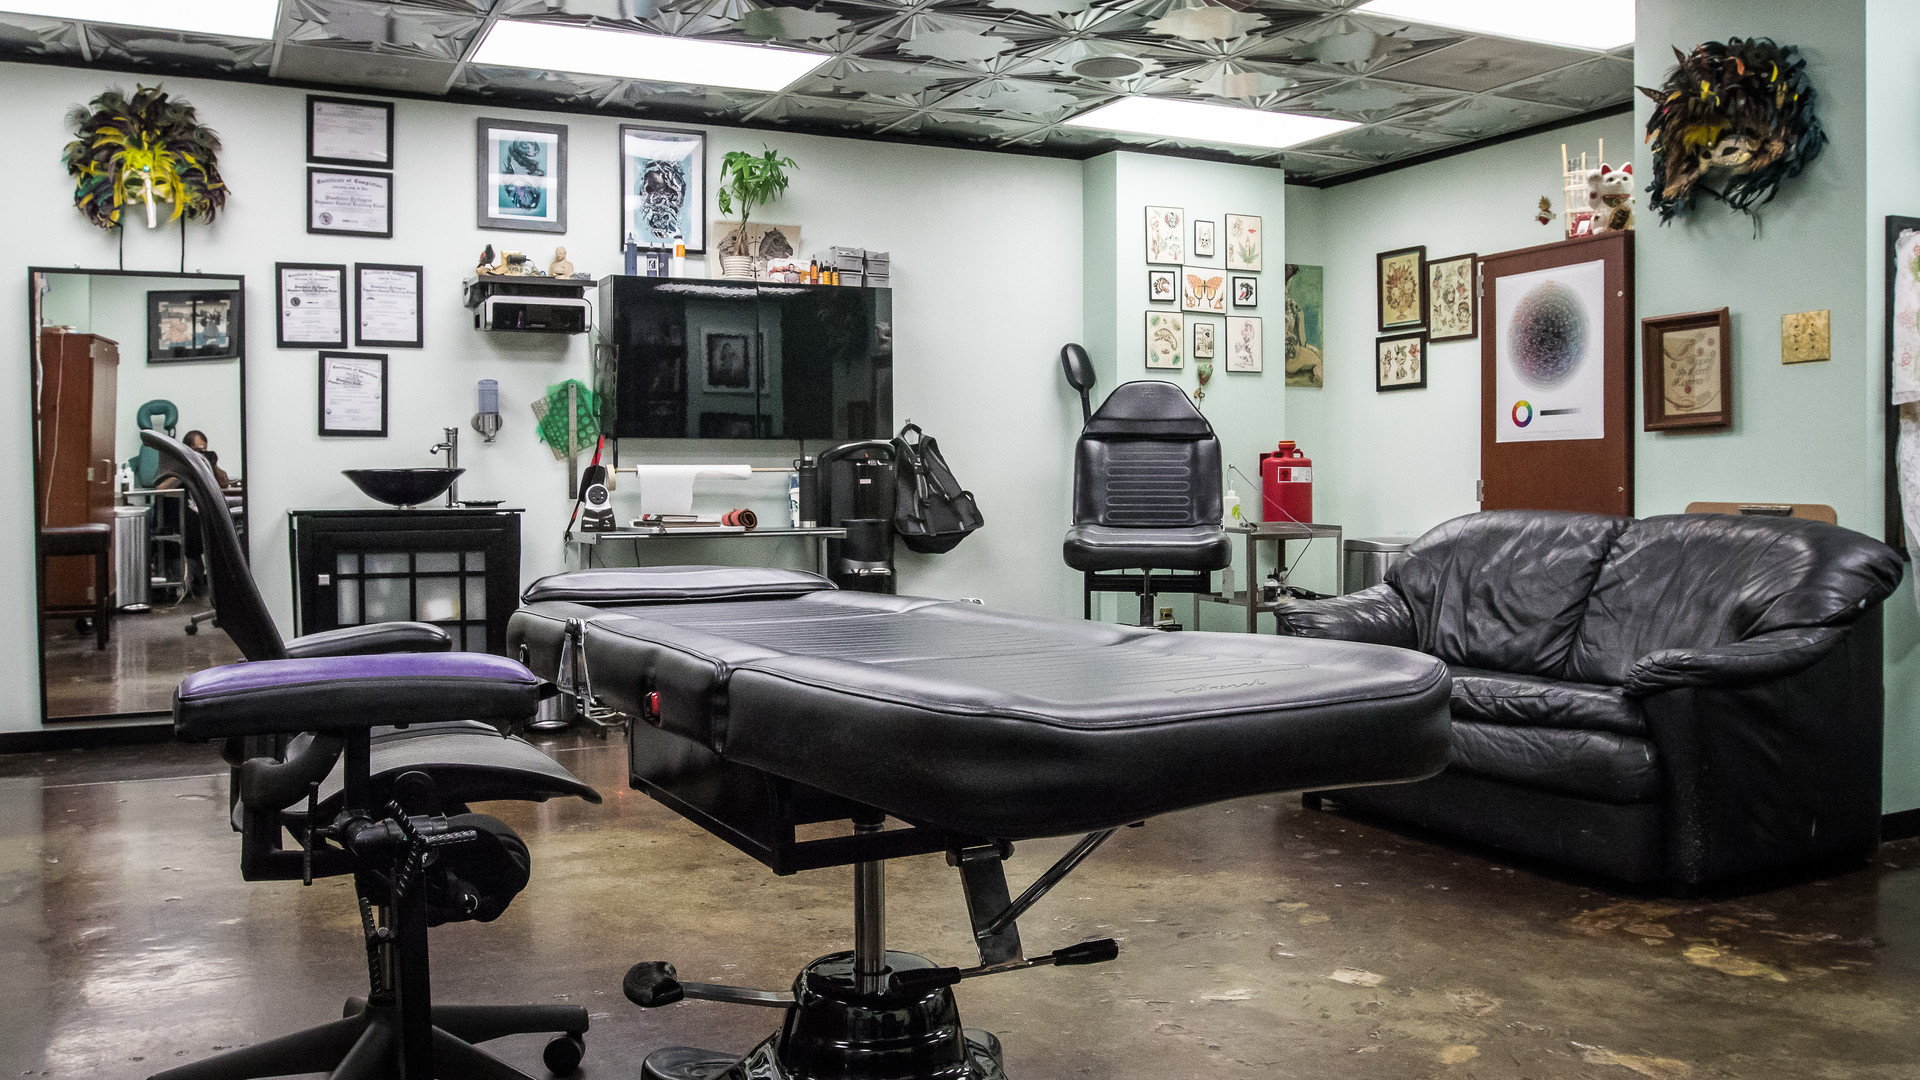 Relax in our hygienic and welcoming tattoo studio - and be yourself.